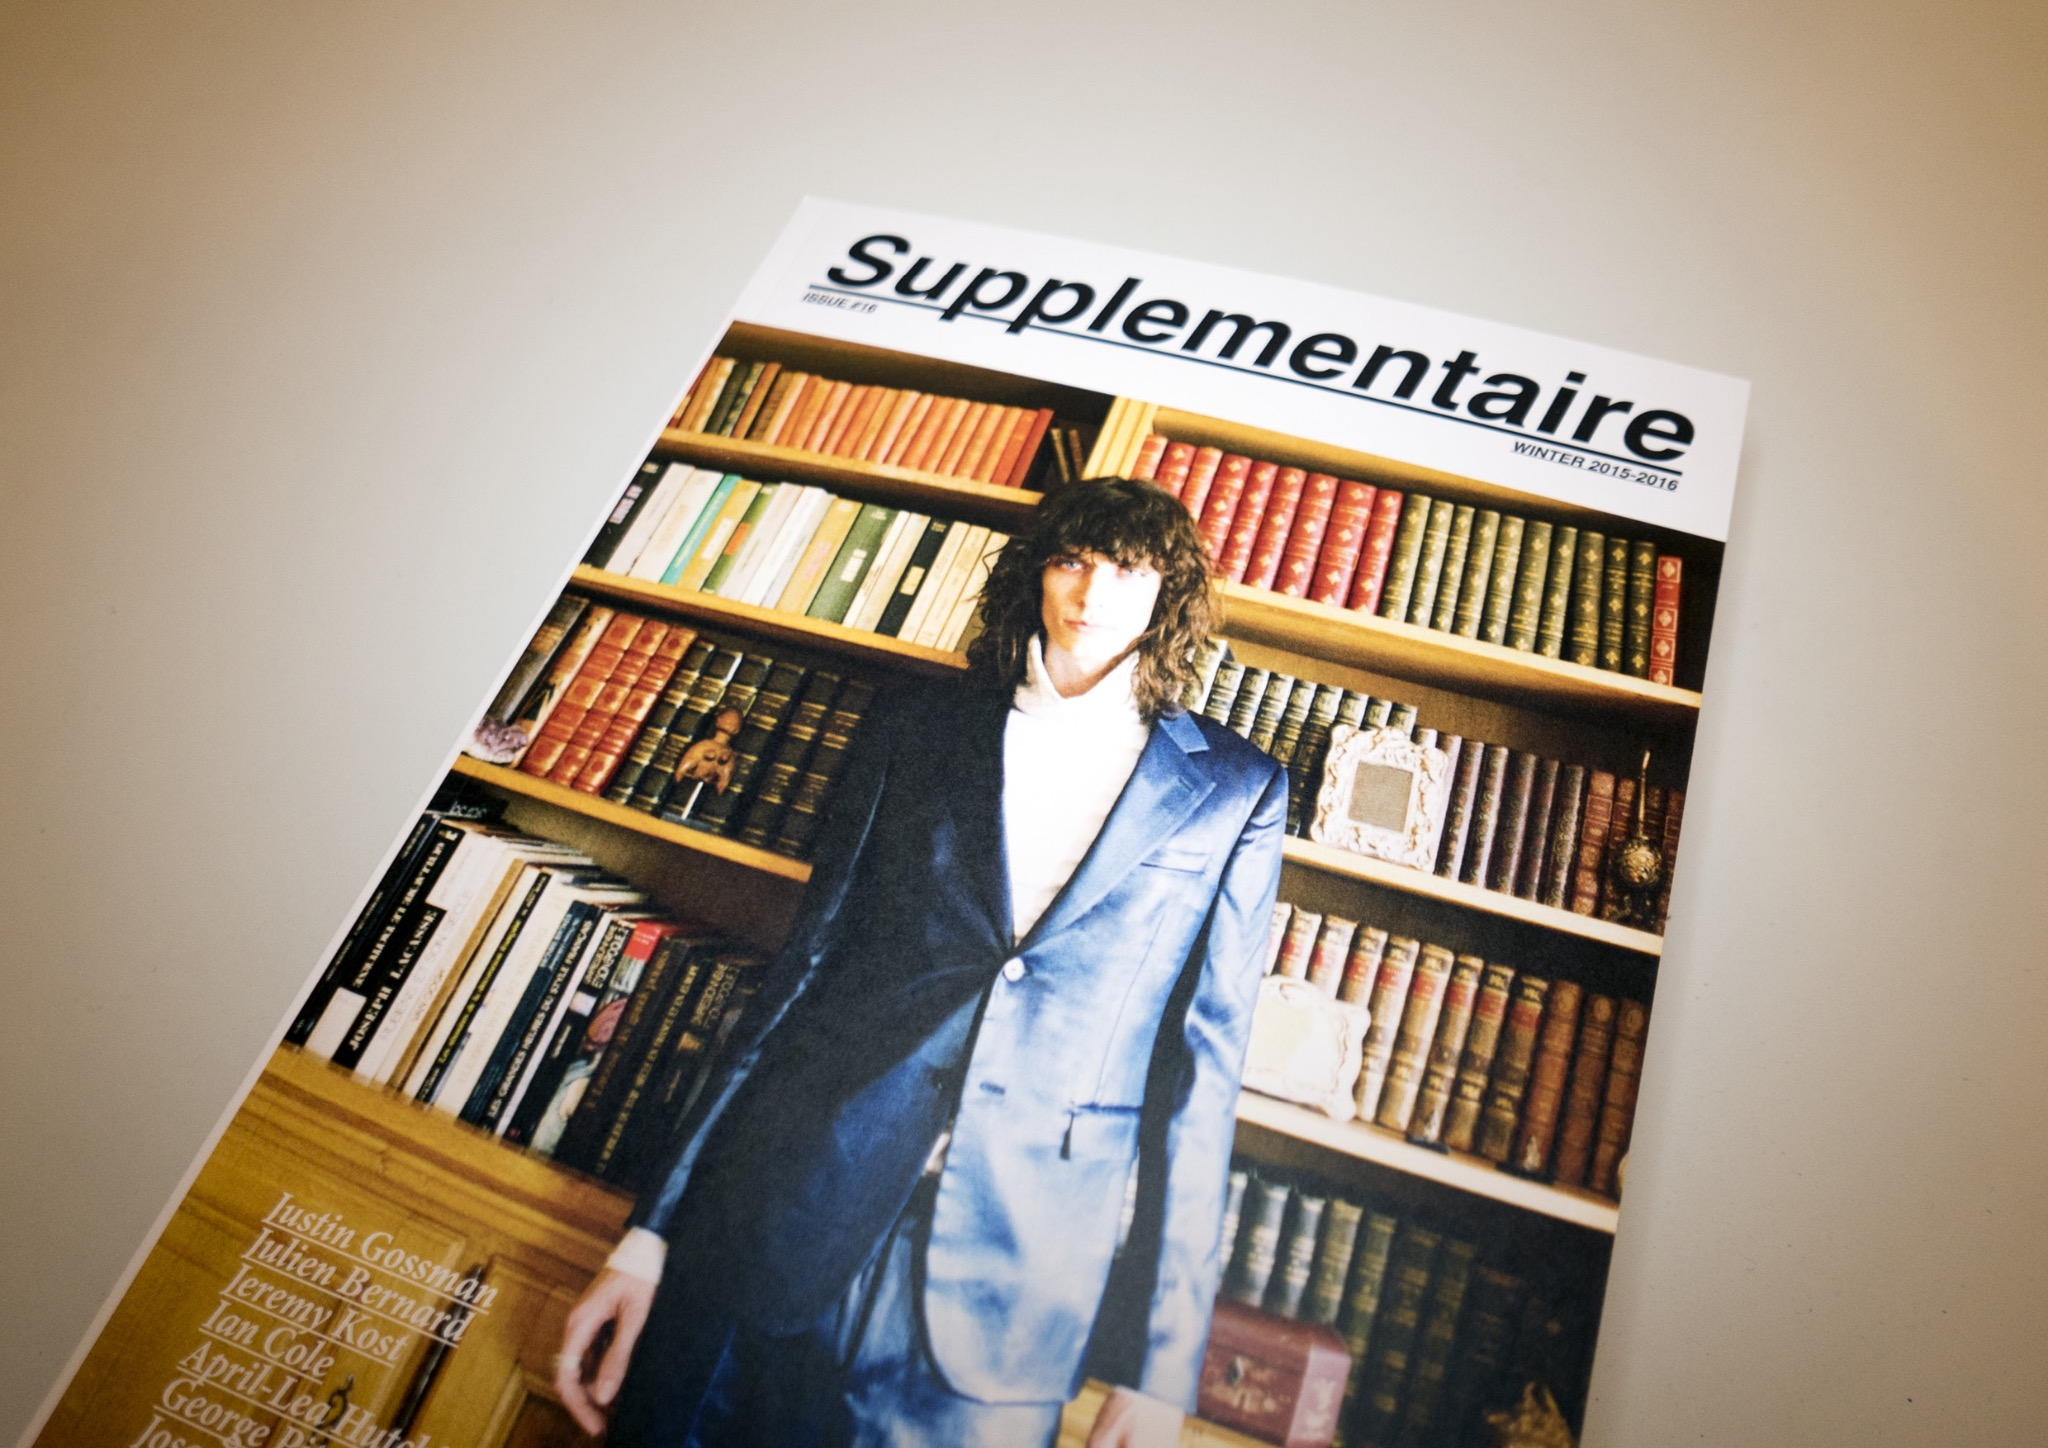 Supplementaire #16 (Print Edition)